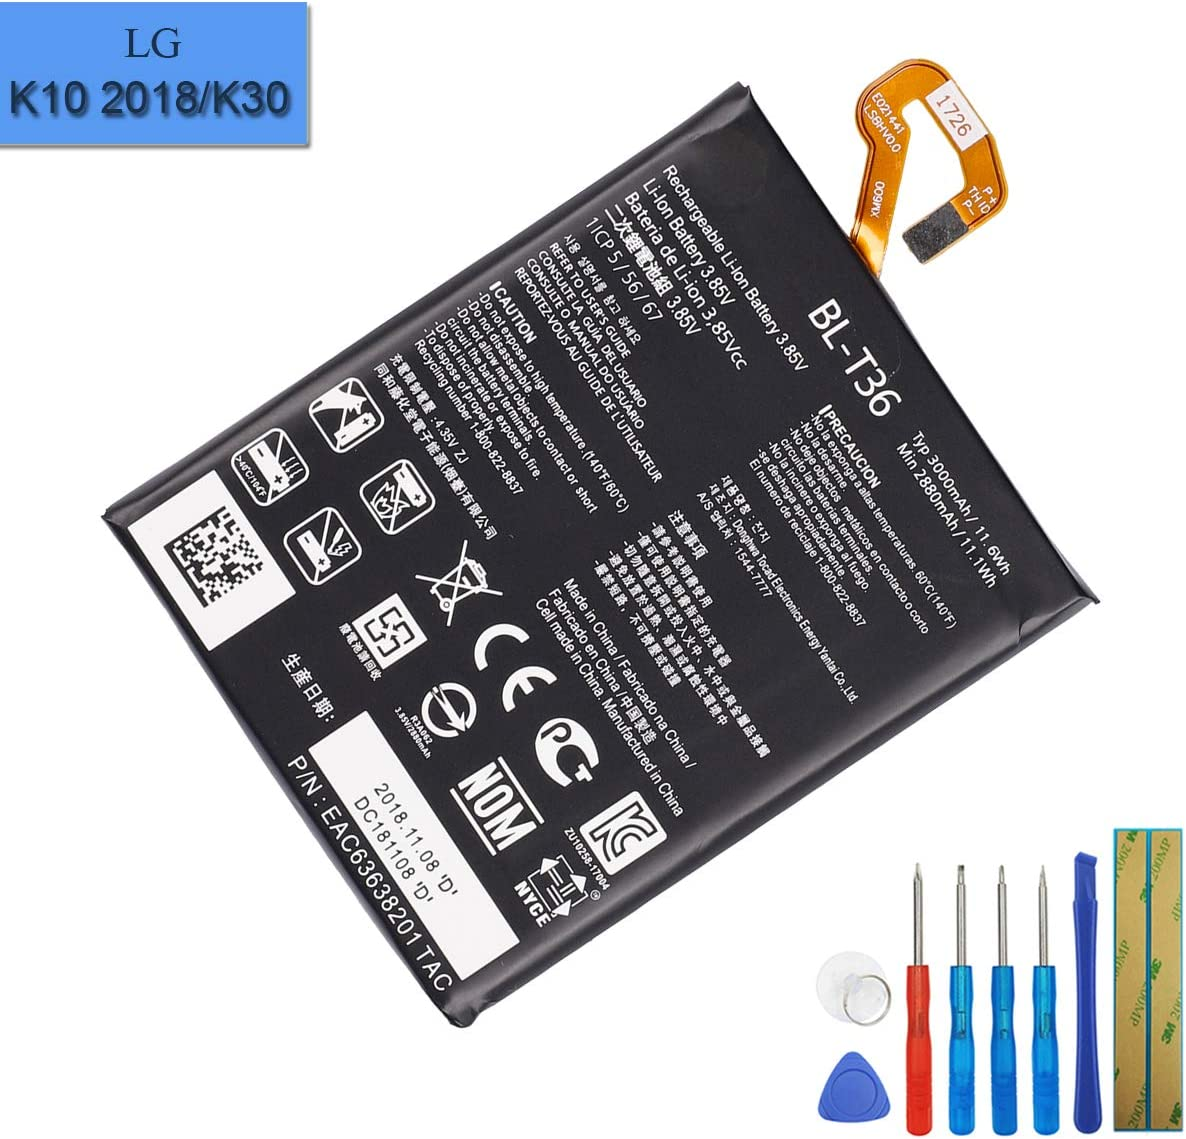 Li-Polymer Replacement Battery BL-T36 Compatible with LG K10 2018 K30 K11 2018 X410 X410AS X410E X410X with Tool